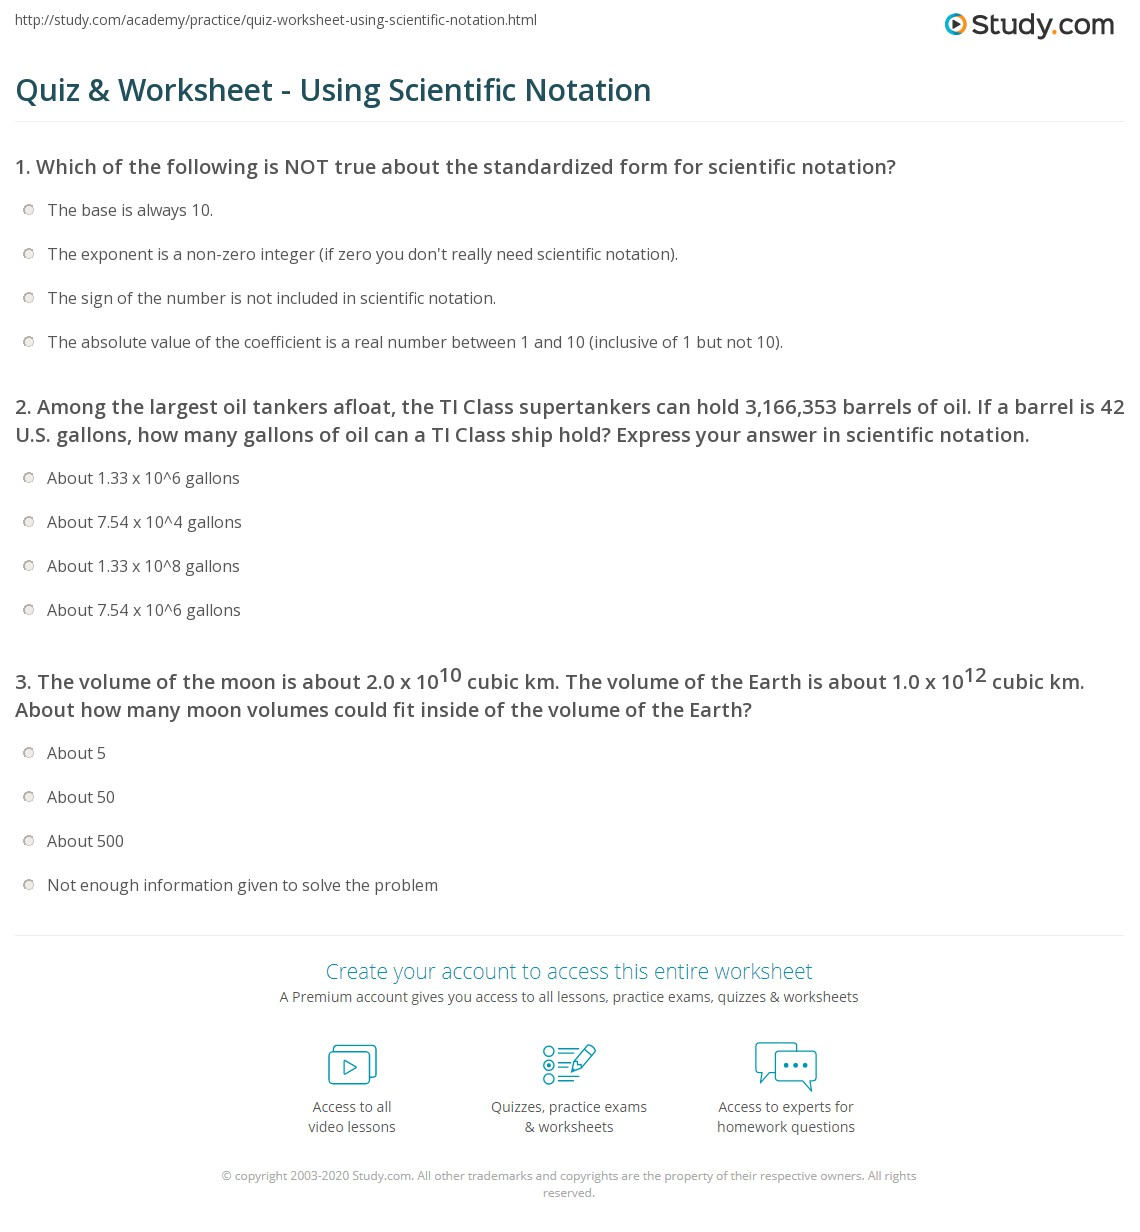 further Scientific Notation Key   KEY Chemistry Scientific Notation Part A further Scientific Notations Worksheets furthermore  additionally Scientific Notation Worksheet Works Answers 21 Pdf Scientific also 15 scientific notation worksheet chemistry   Lettering Site also 43 Download Scientific Notation Worksheet Answer Key likewise  furthermore Scientific Notation Worksheet Answer Key Scientific Notation moreover  in addition Quiz   Worksheet   Using Scientific Notation   Study together with  additionally Balancing Equations Worksheet Activity Sheet Pack Sheets s additionally  also Unit Conversion And Scientific Notation Worksheet   Free Printables besides Scientific Notation Operations Worksheet Math Operations With. on chemistry scientific notation worksheet answers